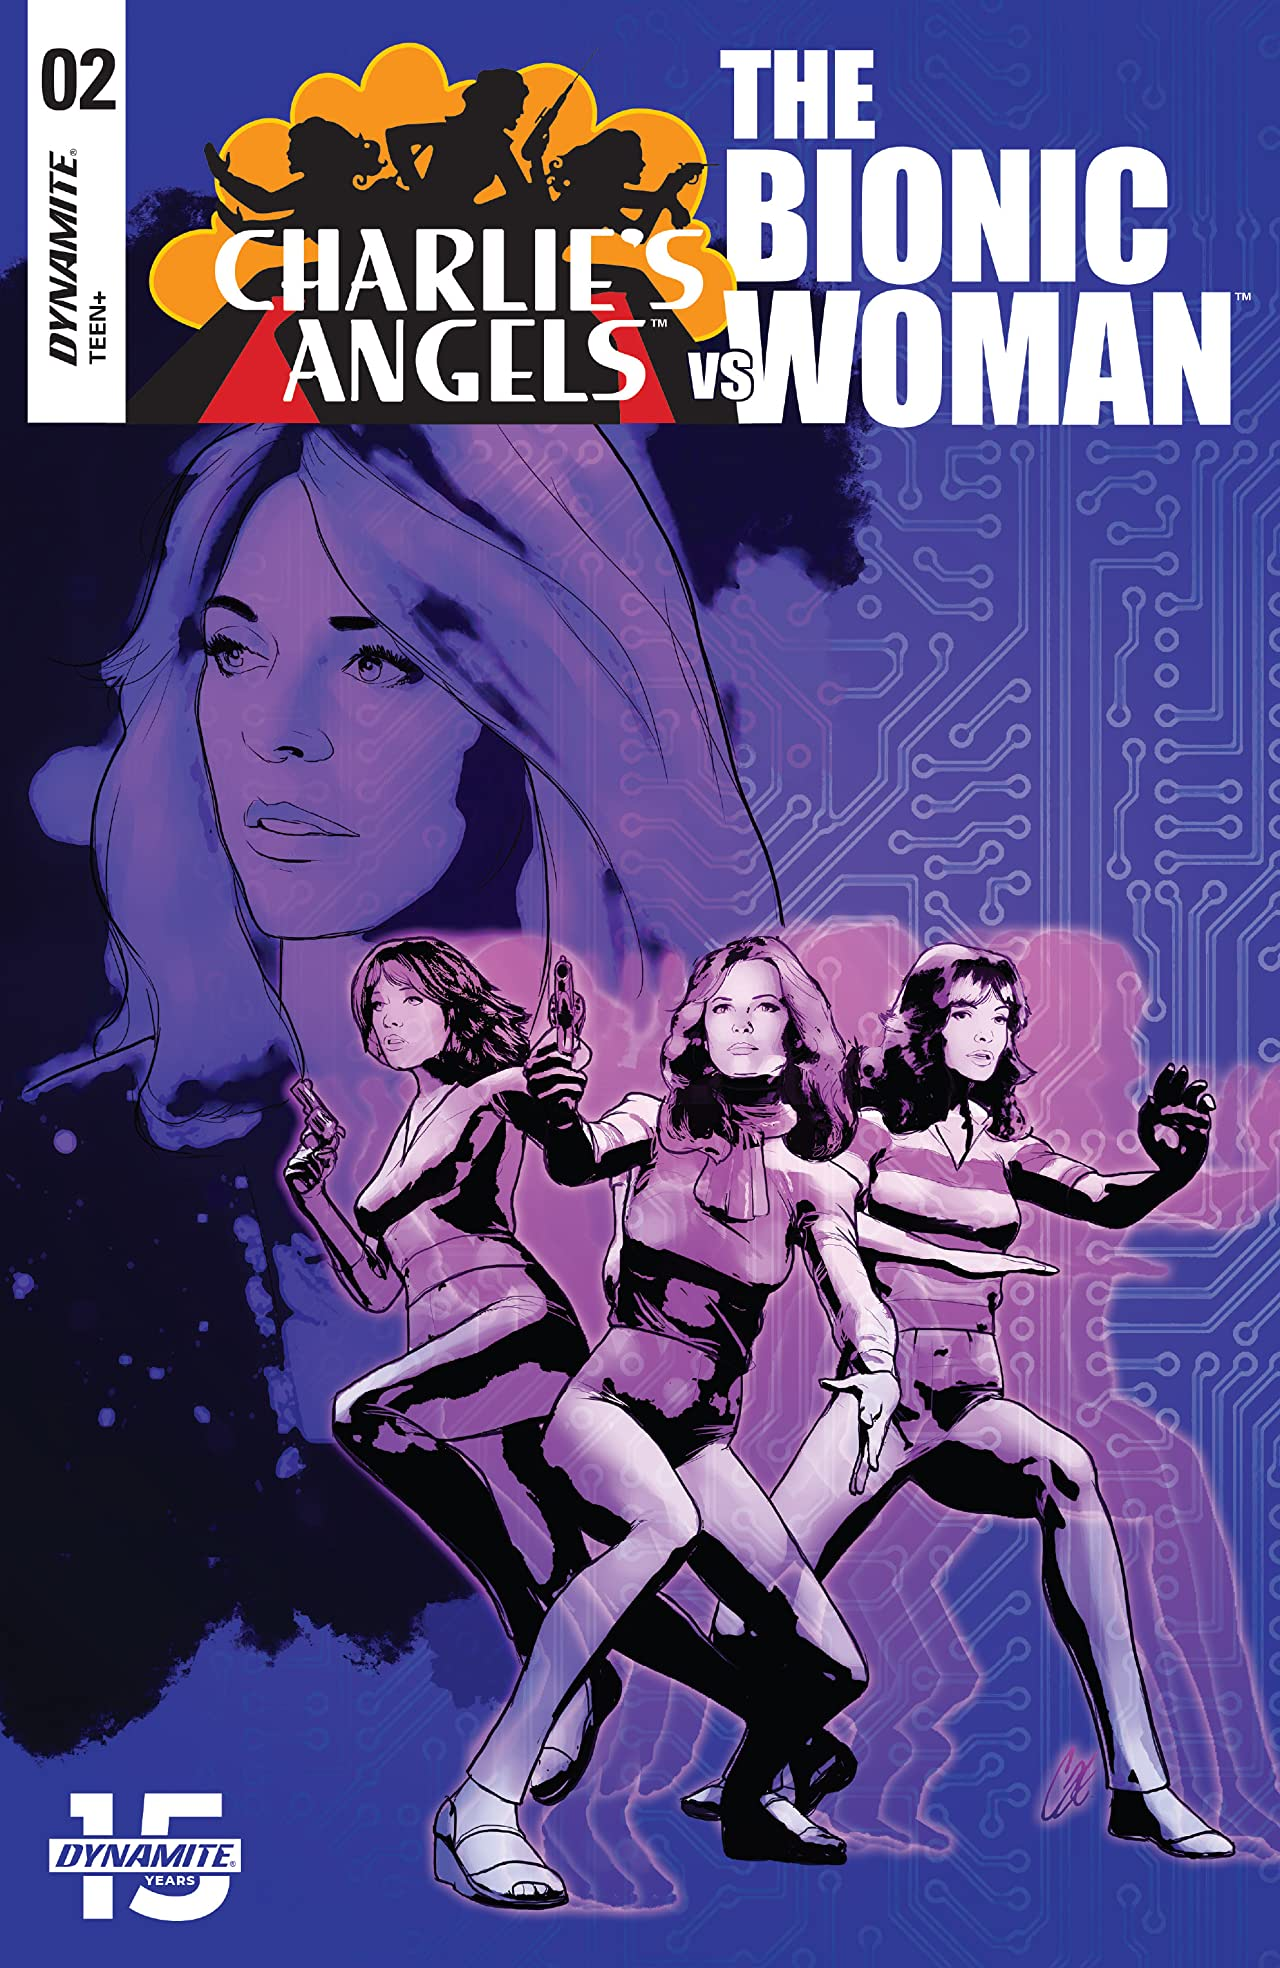 Charlie's Angels vs. The Bionic Woman No.2